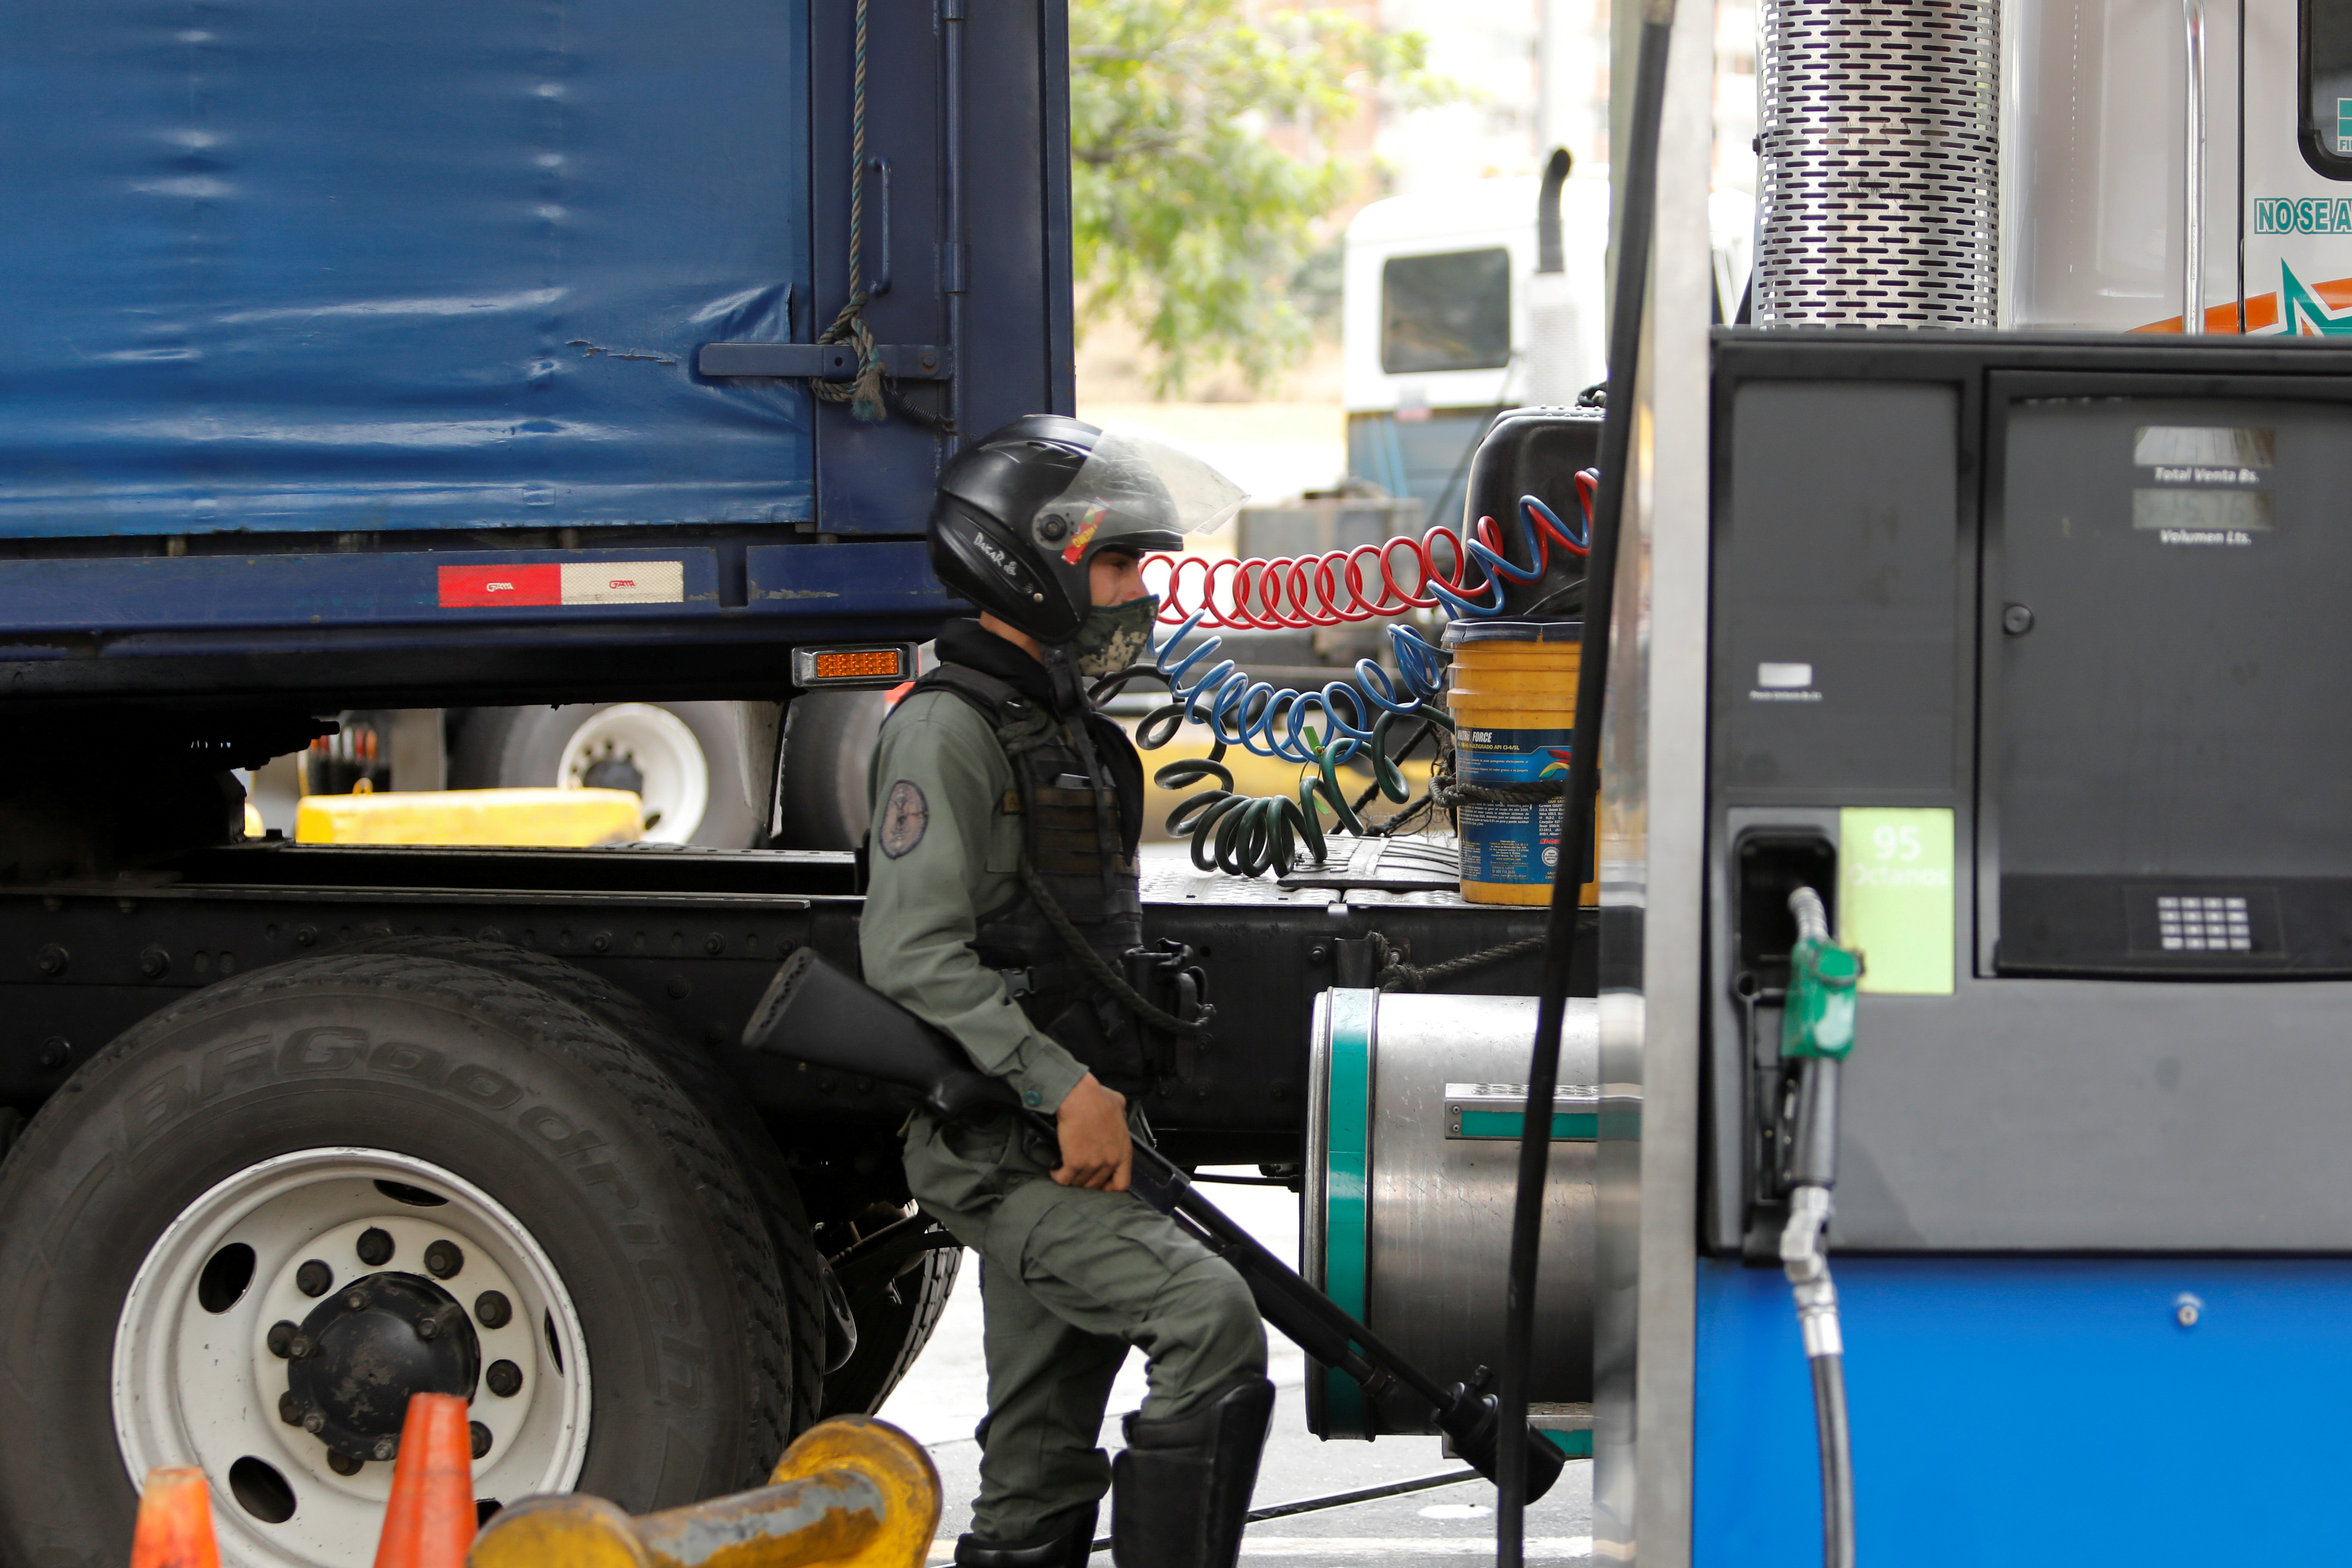 A member of the Bolivarian National Guard keeps watch at a gas station as trailer trucks line up along an avenue to fill up their tanks as part of a growing diesel shortage, in Caracas, Venezuela March 5, 2021. REUTERS/Leonardo Fernandez Viloria